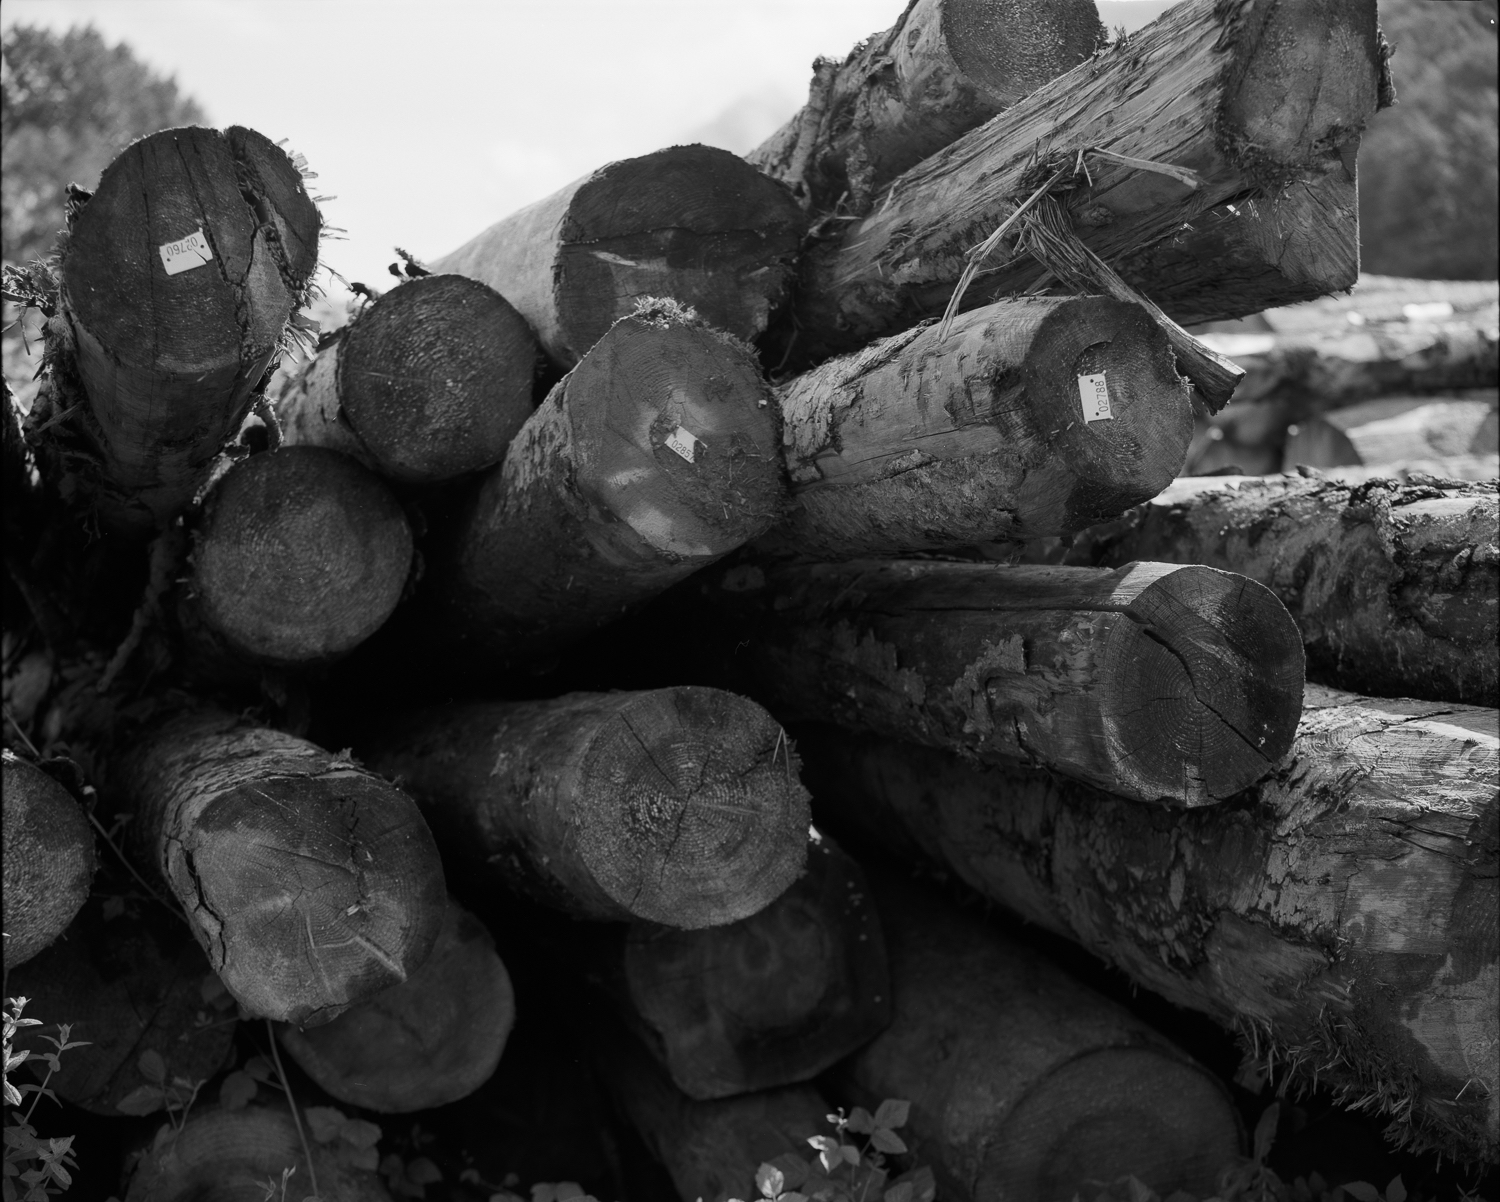 Wood stock from Rotherens sawmill (Savoie)